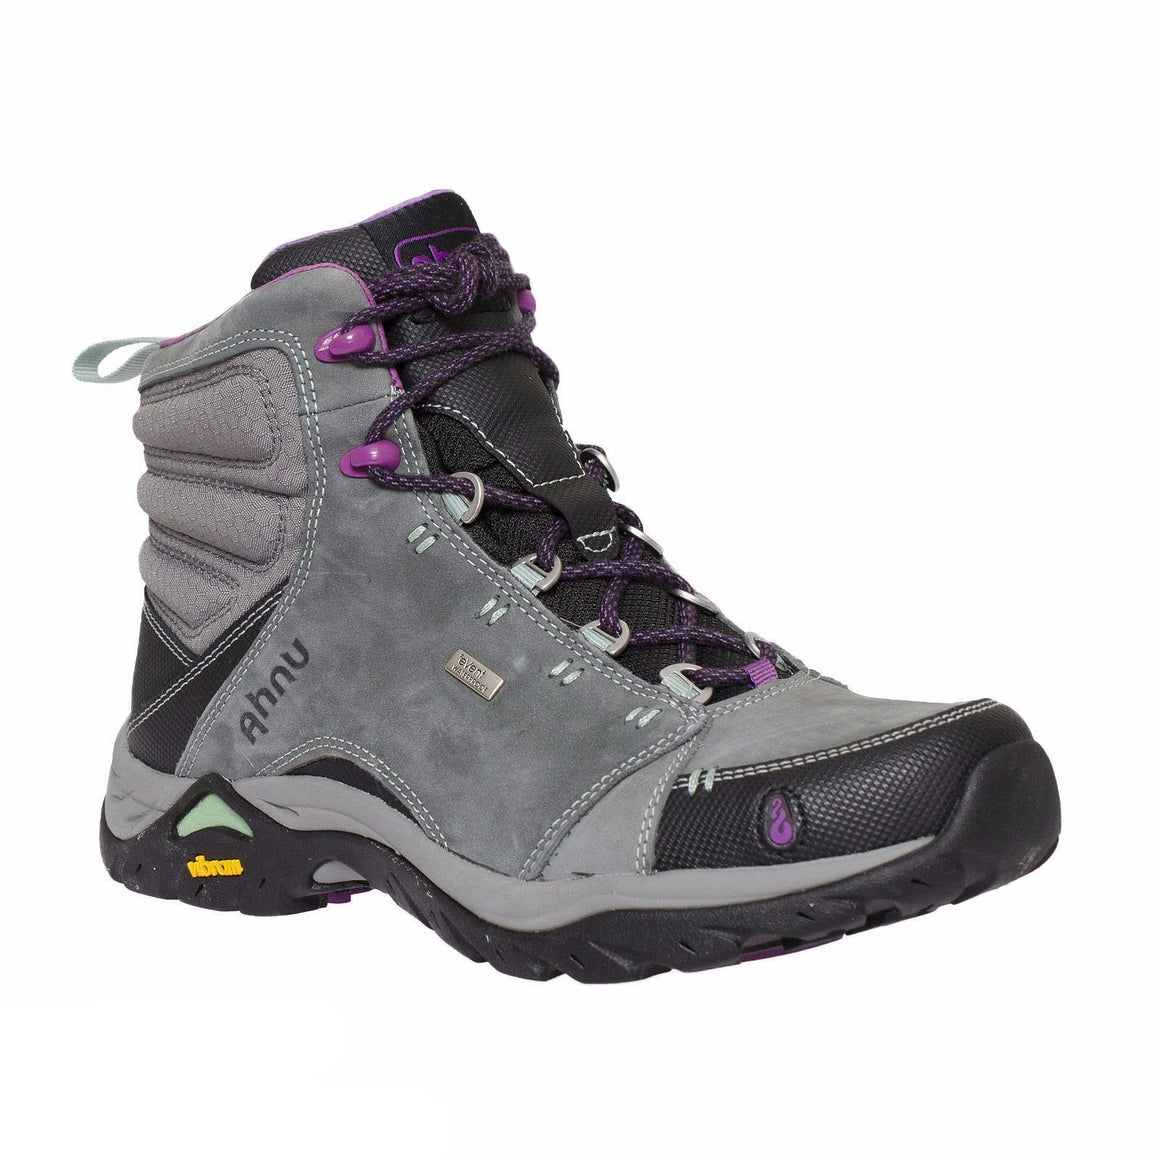 AHNU Montara Dark Grey Boots - Women's